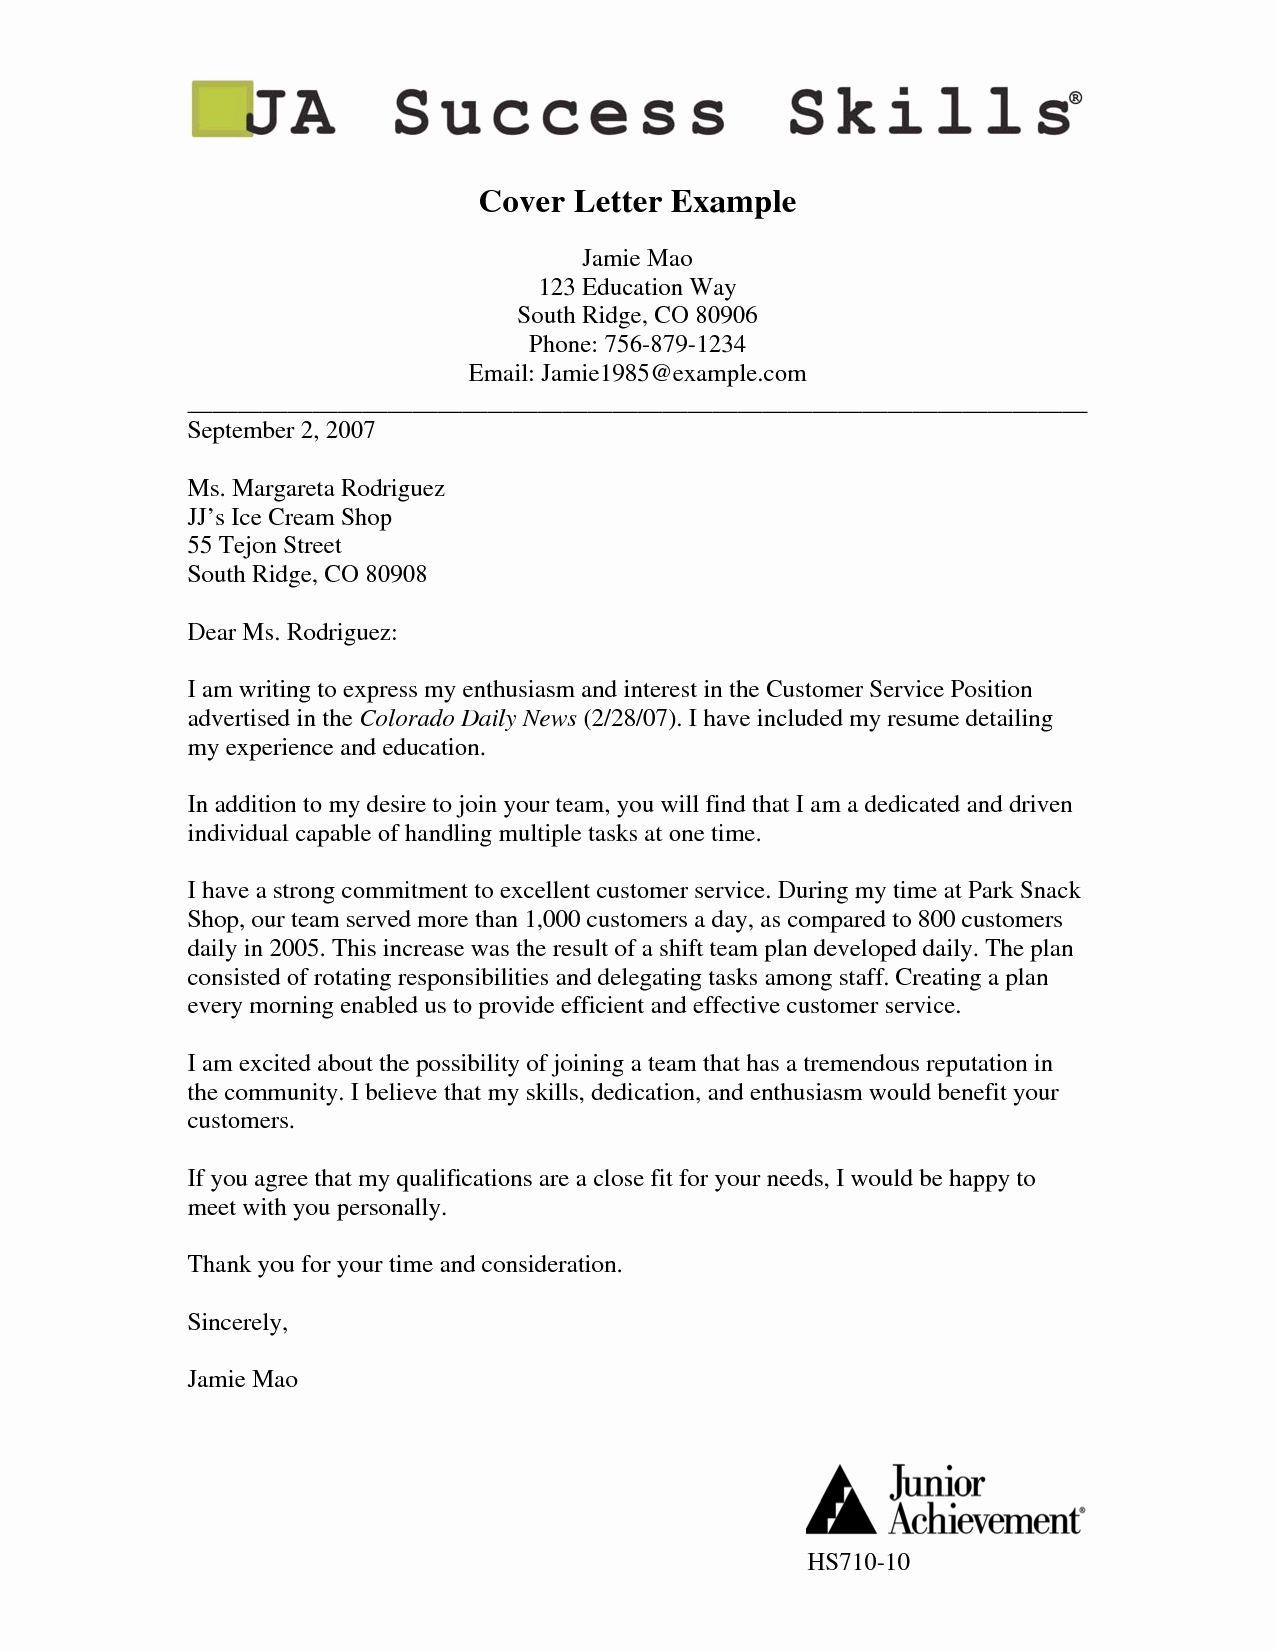 Creating A Cover Letter Template - Powerful Cover Letter Examples 25 Samples Cover Letters for Job Best